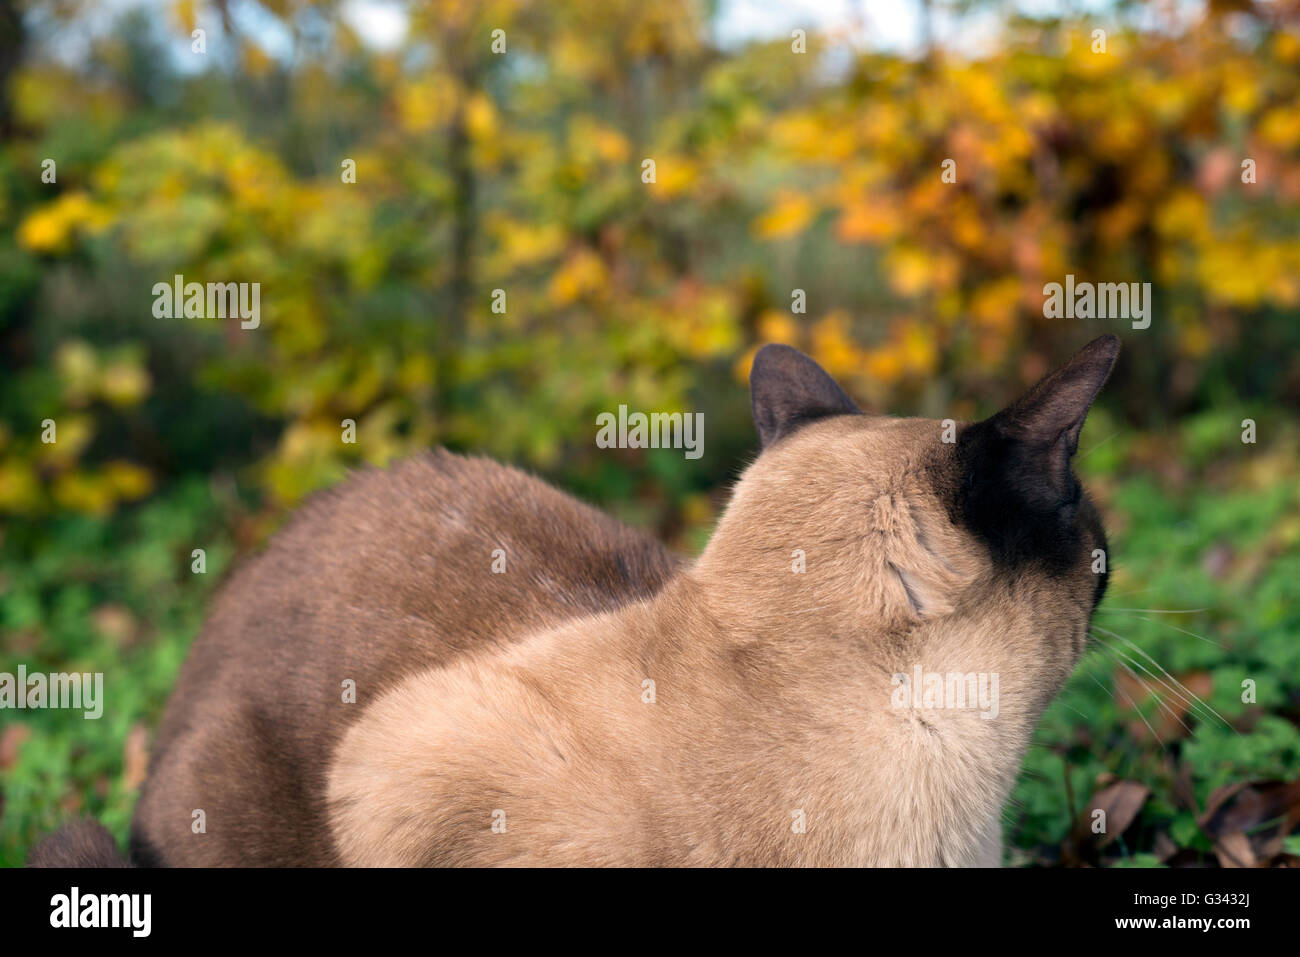 Burmese cat in amongst the foliage Stock Photo